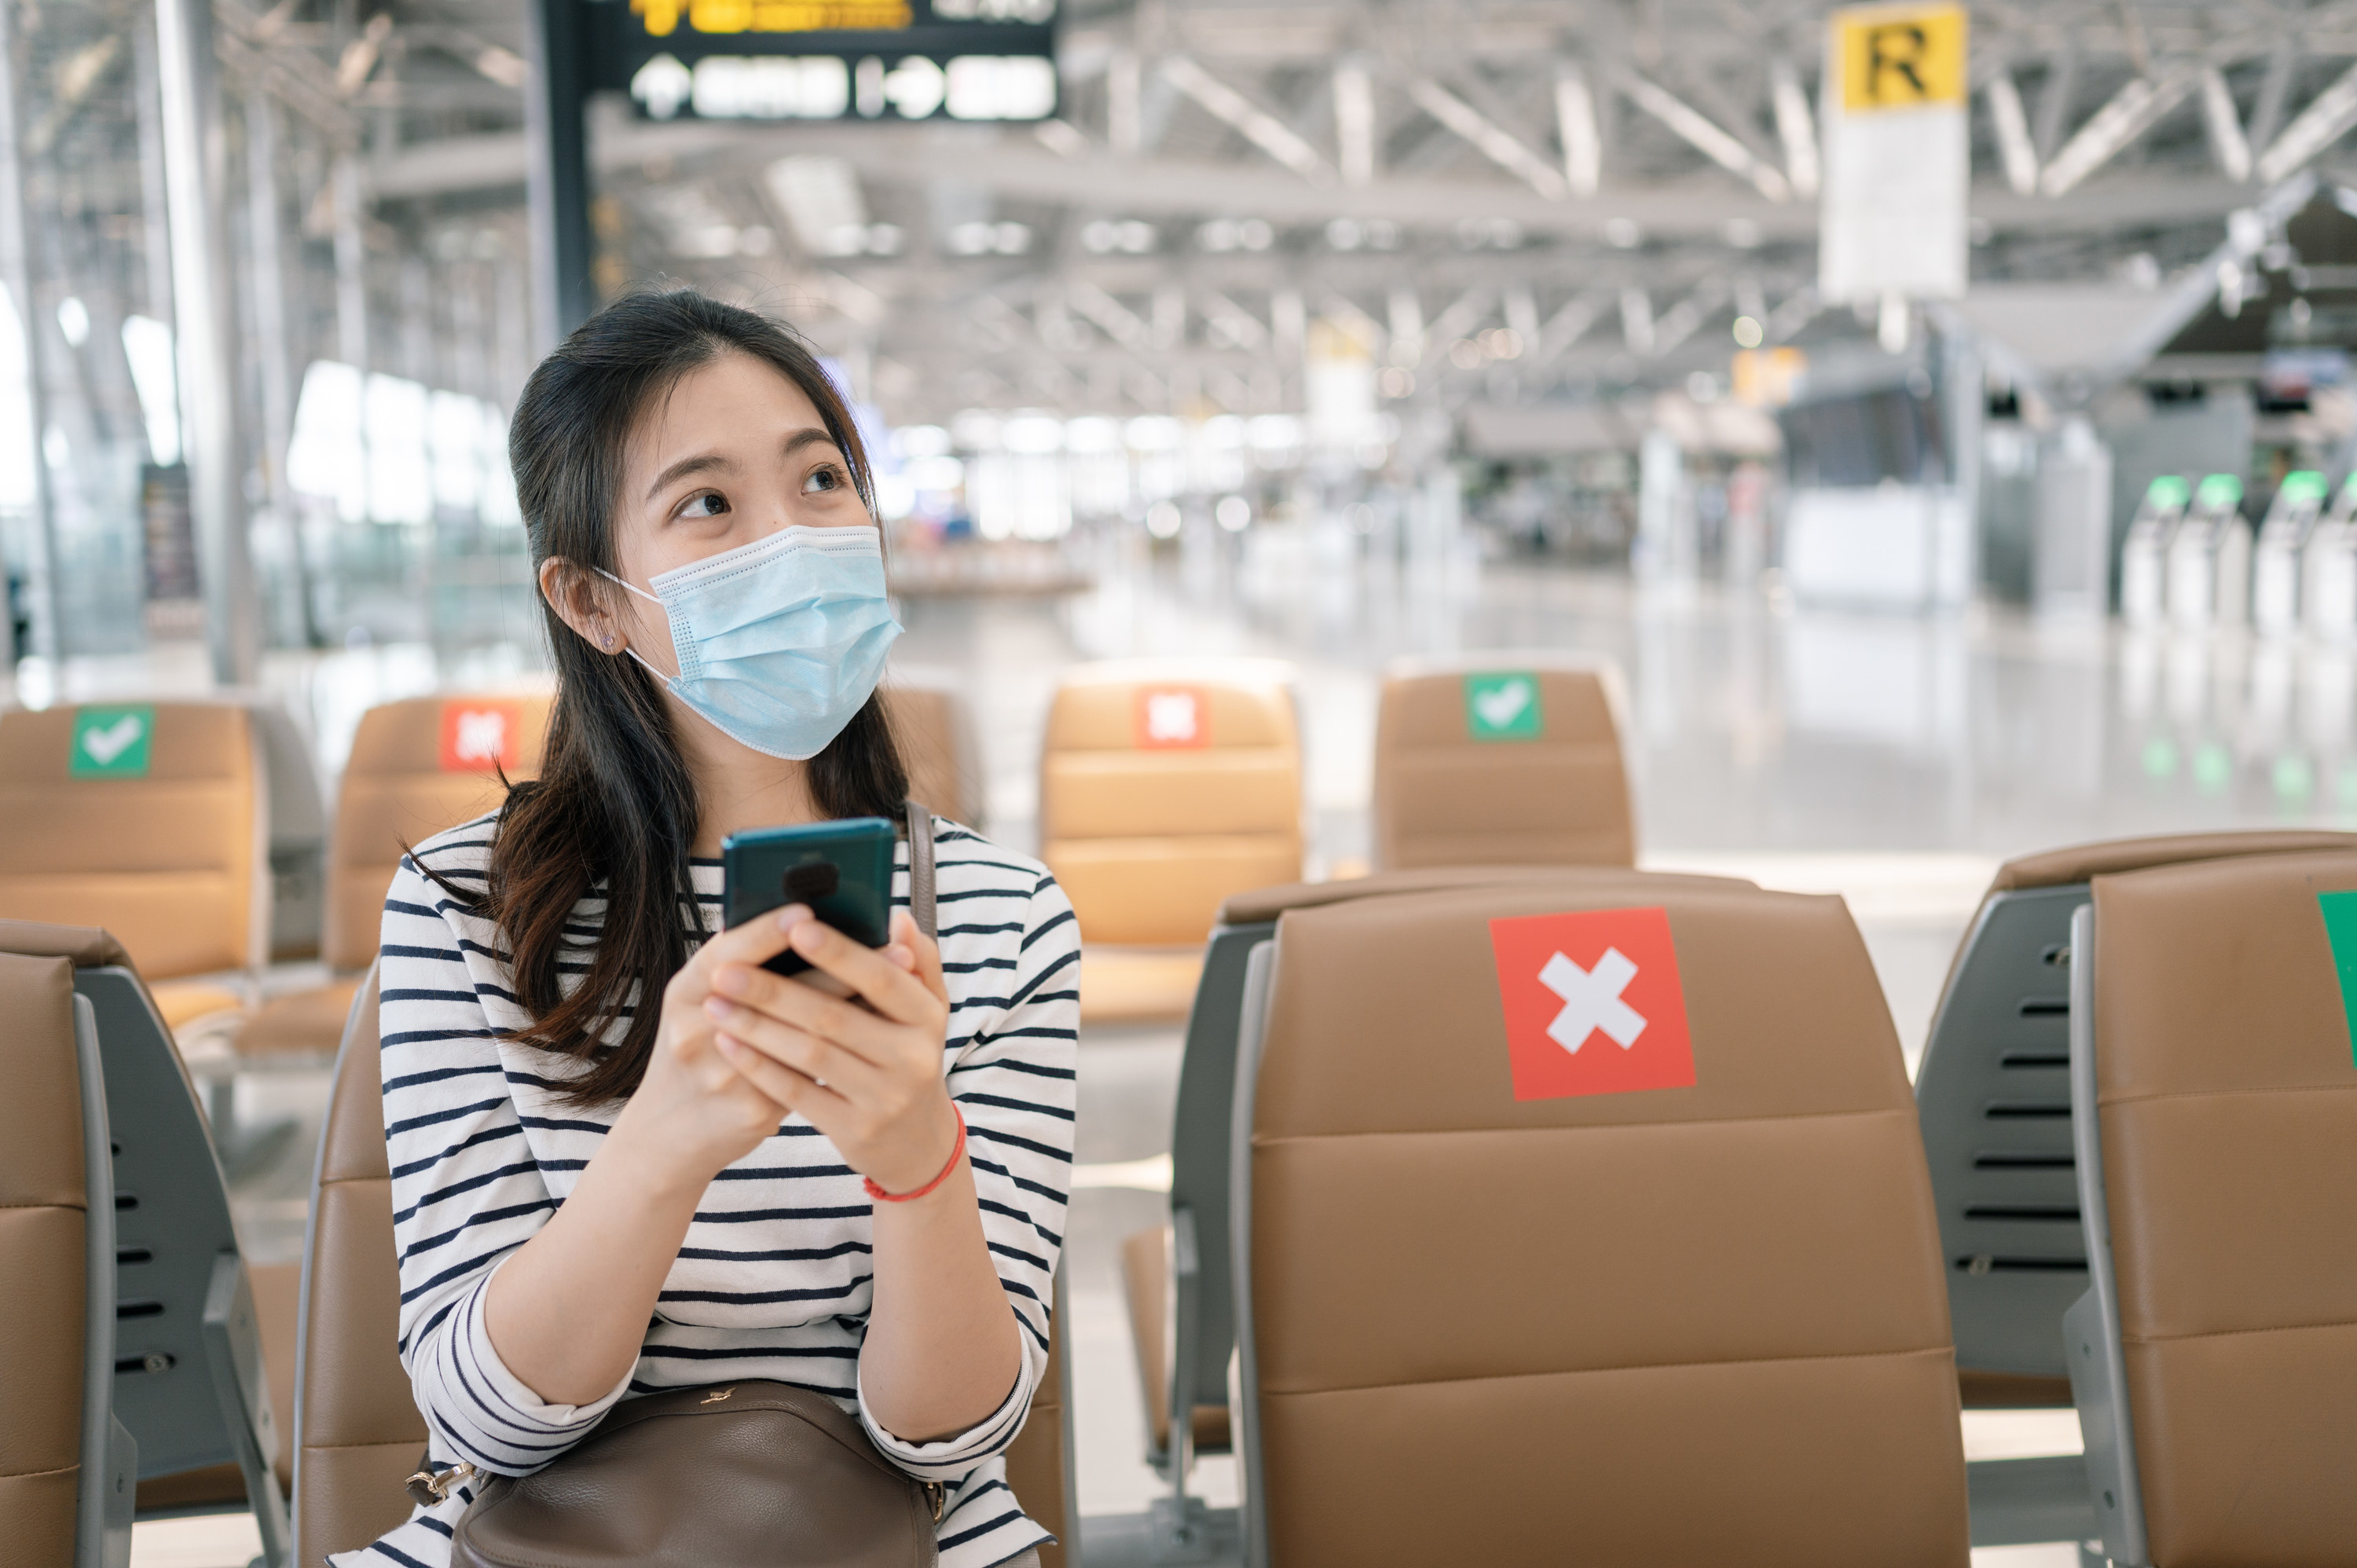 Woman in airport looking at her phone